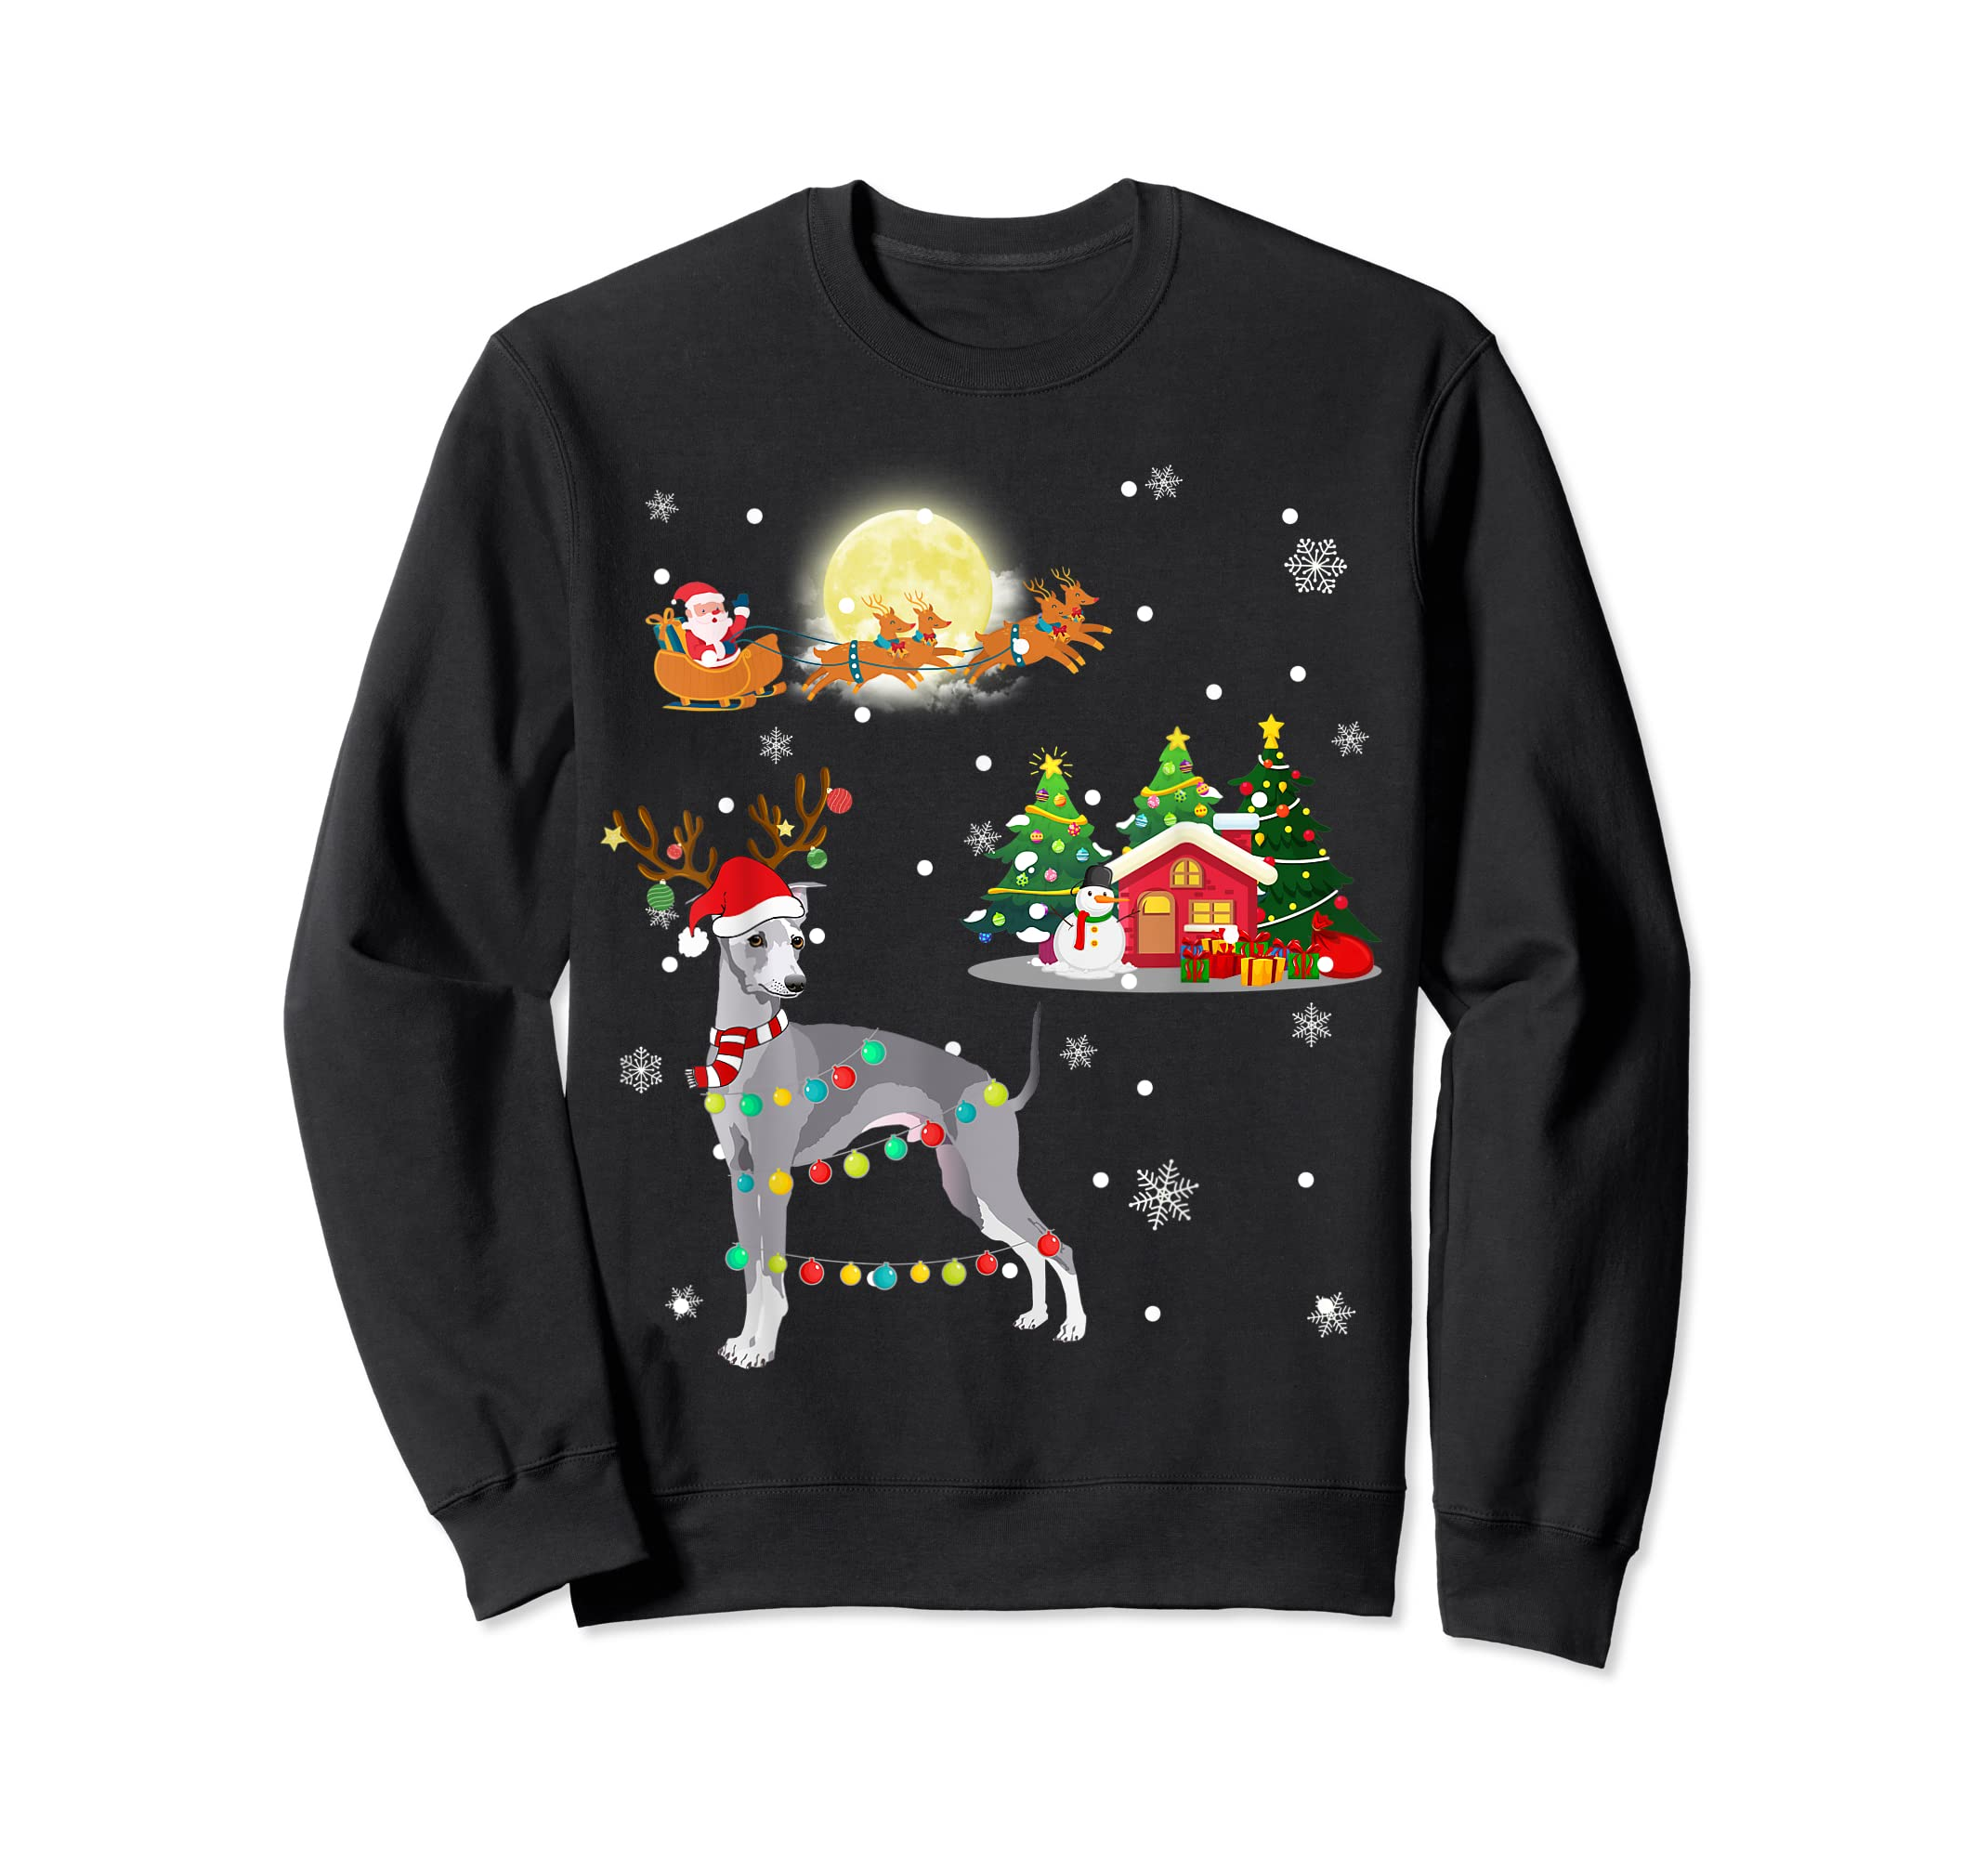 Greyhound Dog Led Light Christmas 2019 Gift T-Shirt-Sweatshirt-Black